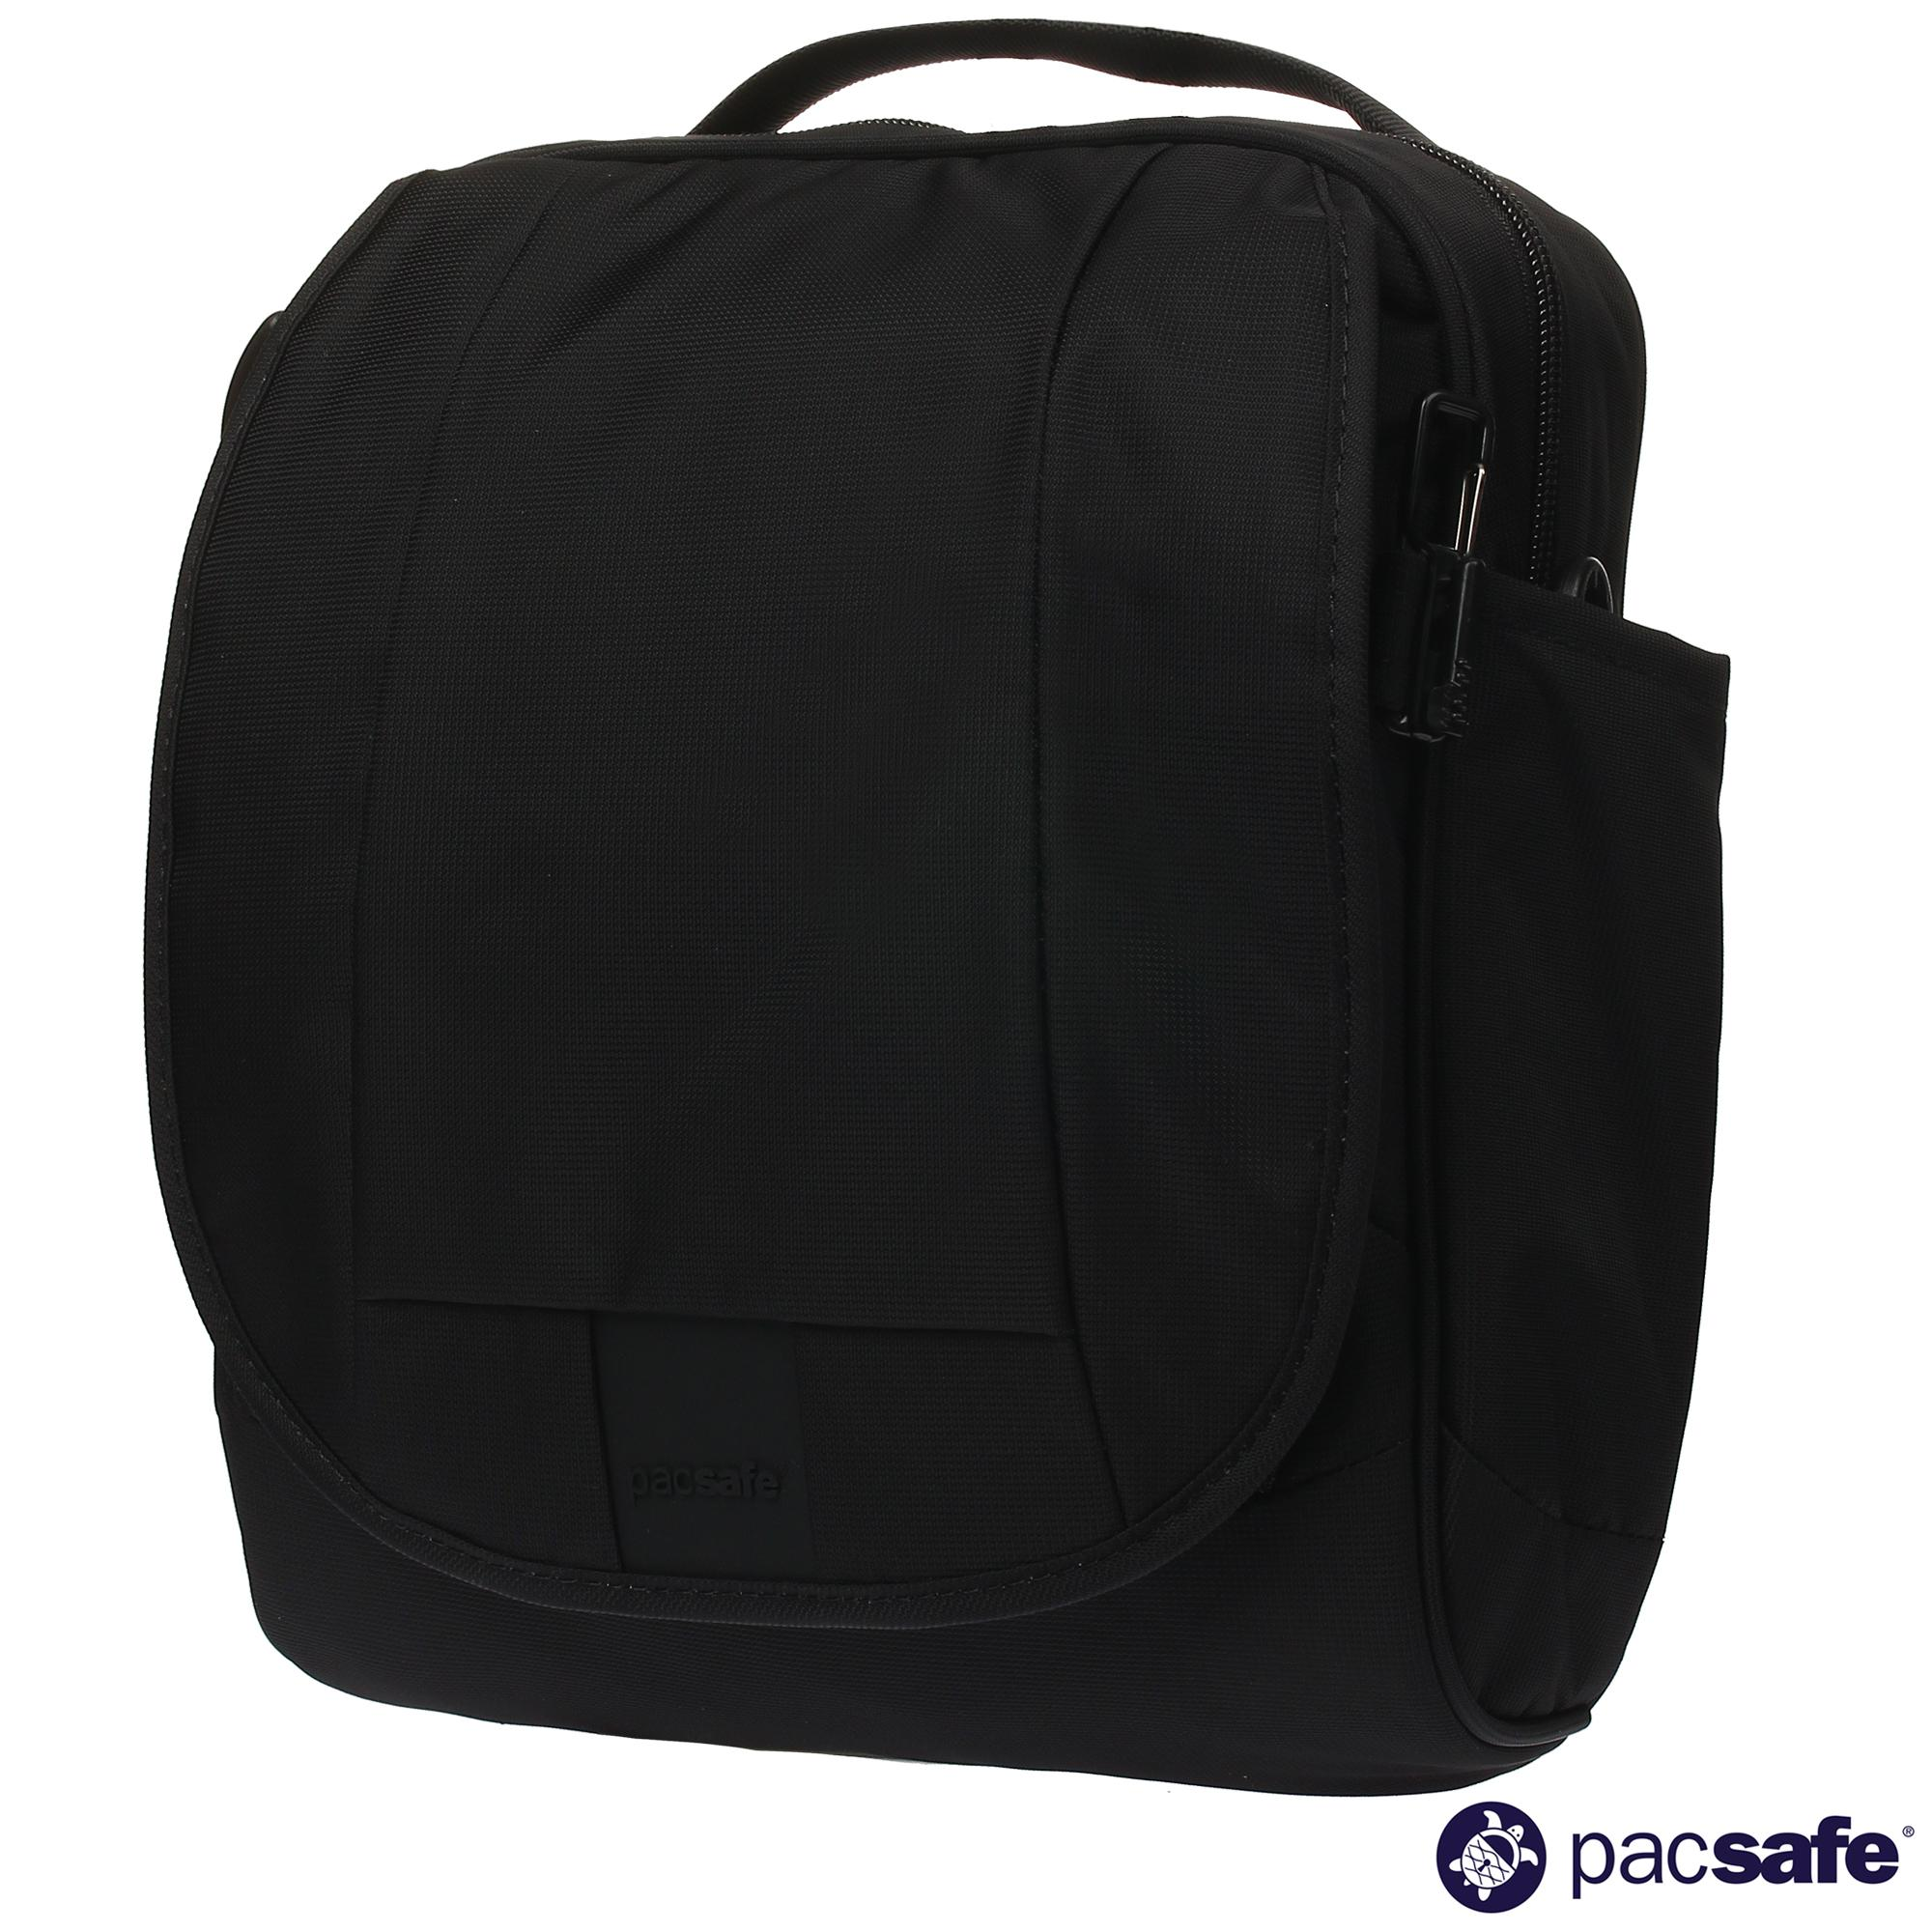 cfe4aa8beb49 Pacsafe Metrosafe LS200 Medium Crossbody Bag  30420 (Black)